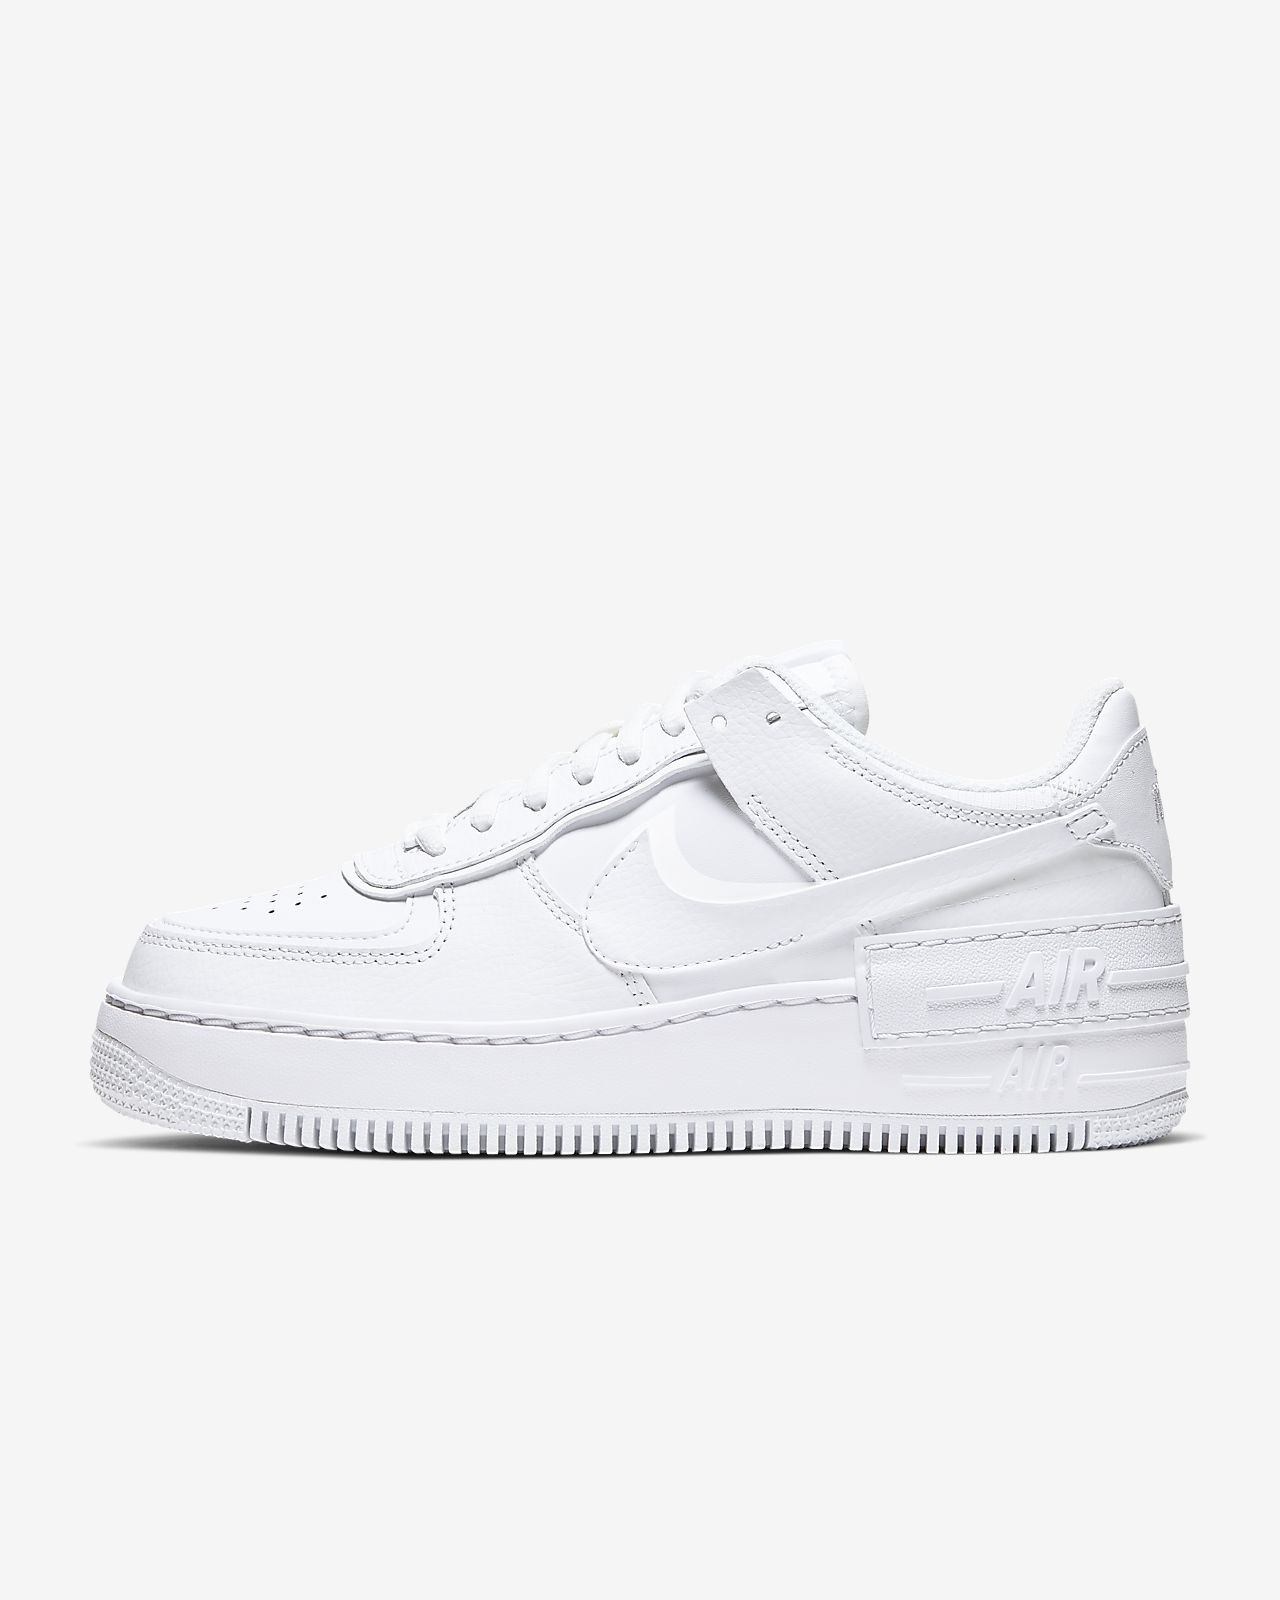 nike air force 1 shadow bianche e nere